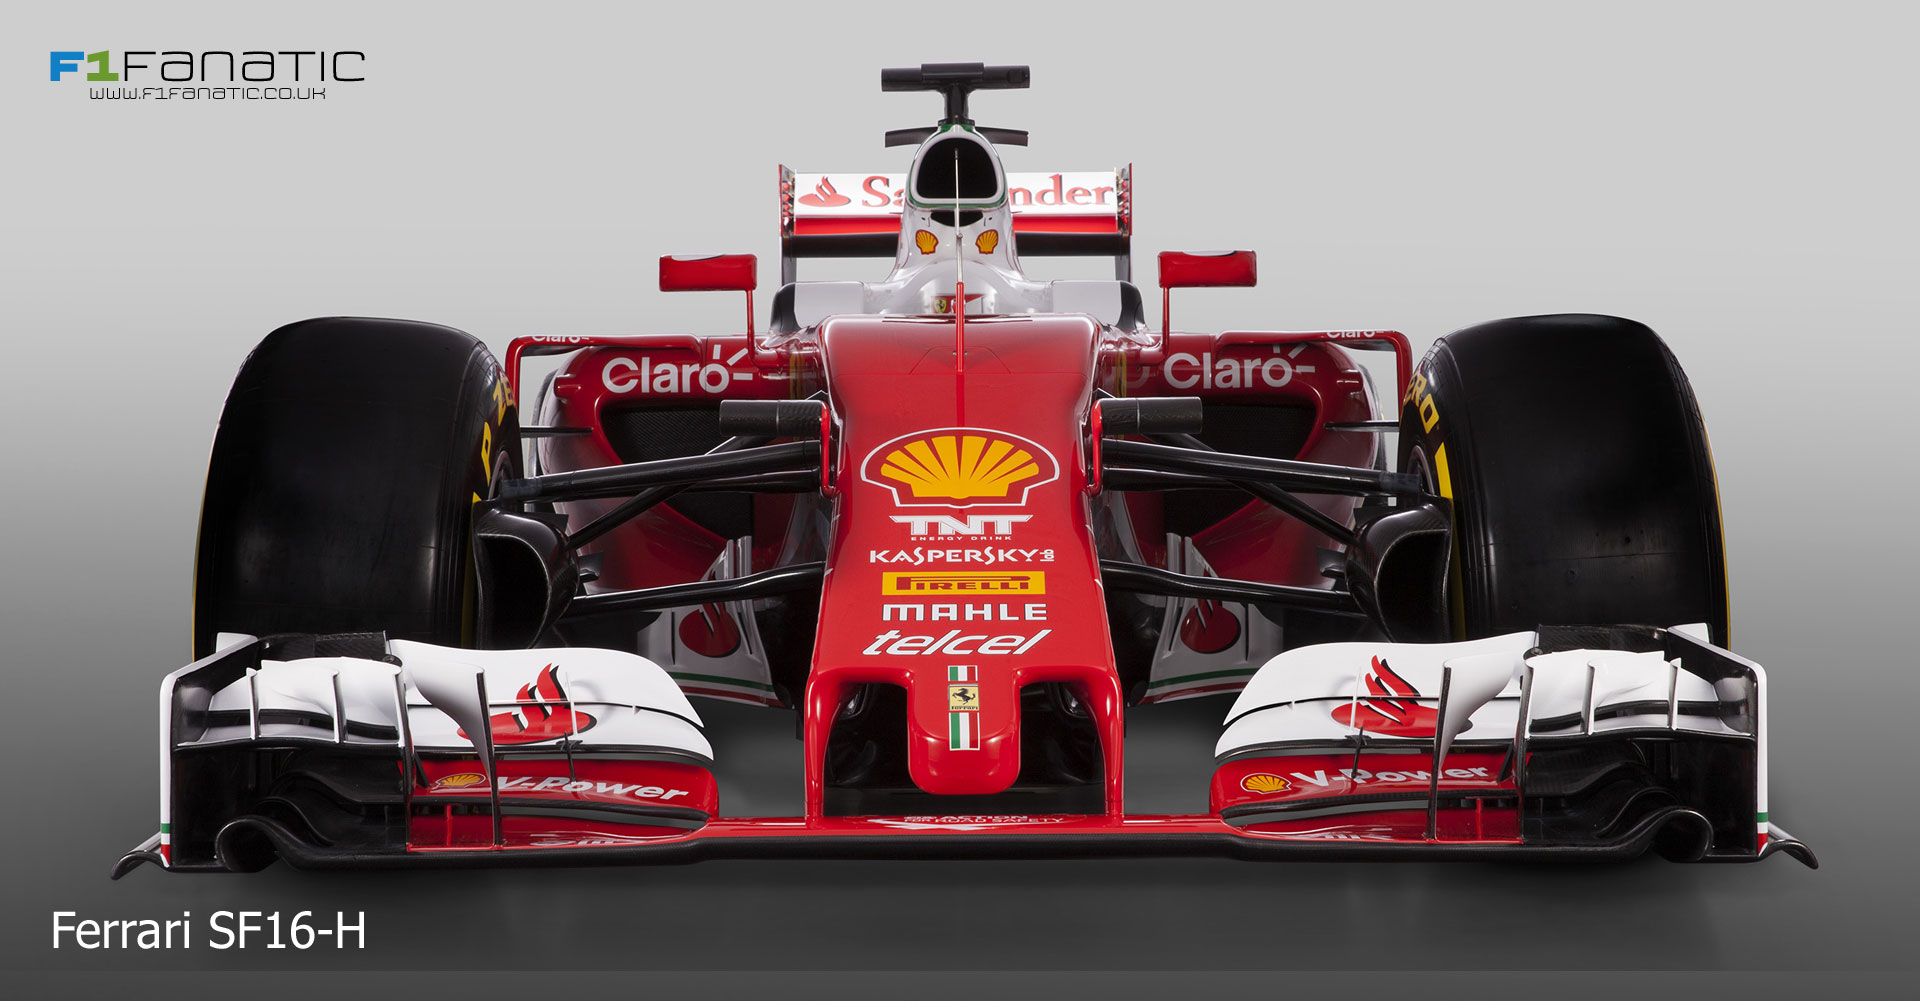 compare ferrari 39 s new sf16 h with their 2015 car racefans. Black Bedroom Furniture Sets. Home Design Ideas